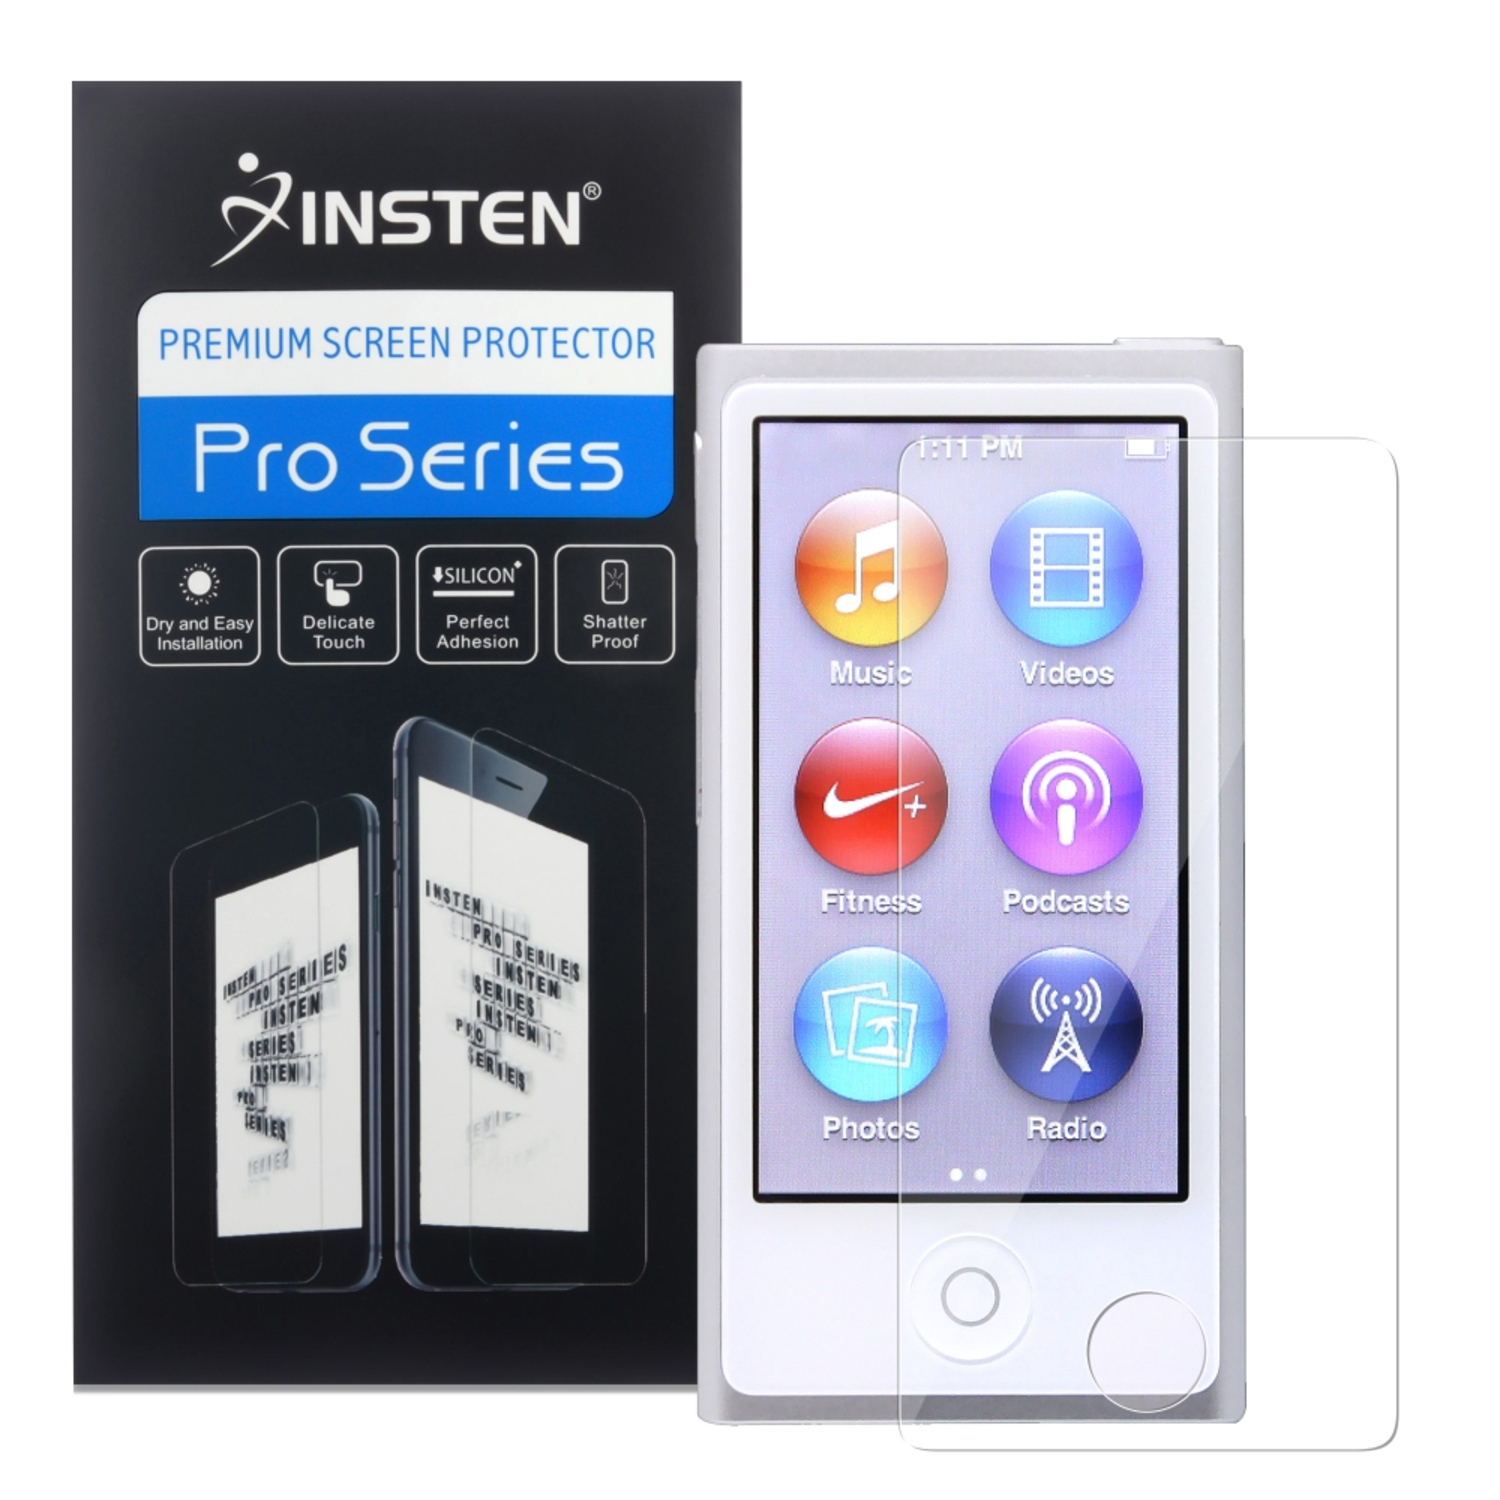 Insten 3x Clear Screen Protector Guard Film Cover For iPod Nano 7 7G 7th Gen